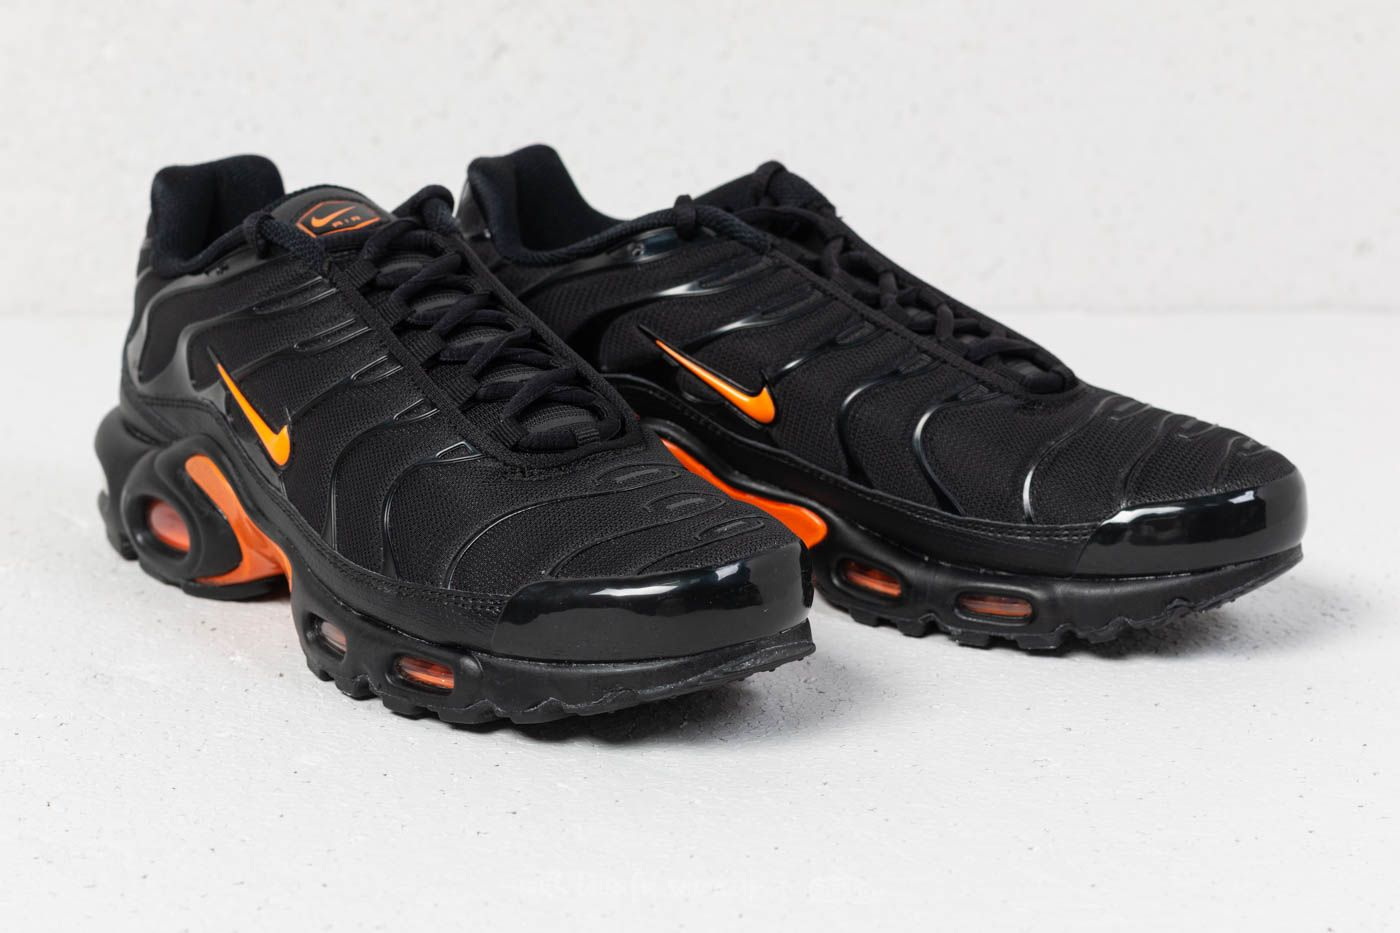 on sale eee4b acbd9 Nike Air Max Plus TN SE Black/ Total Orange | Footshop